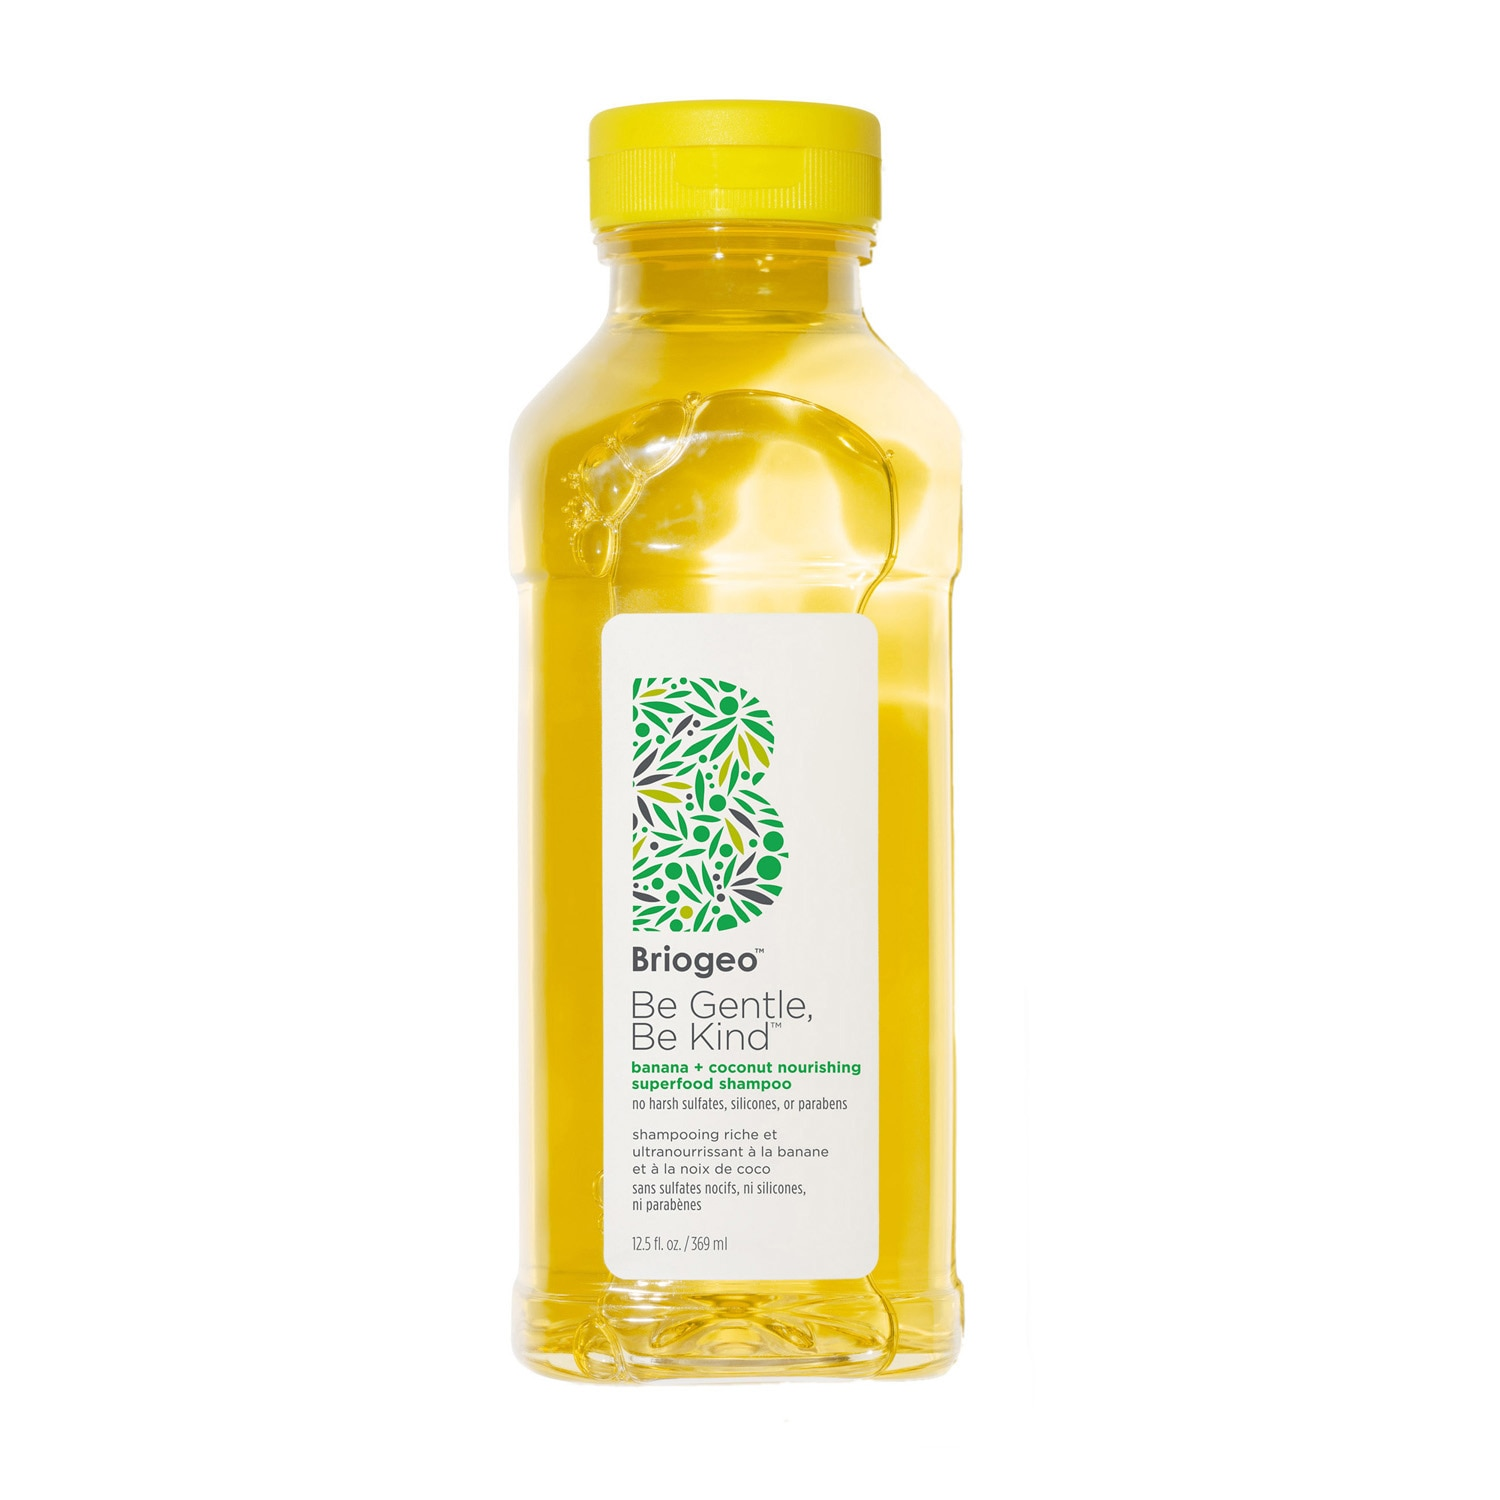 BE GENTLE BE KIND™ BANANA + COCONUT NOURISHING SUPERFOOD SHAMPOO 12.5OZ